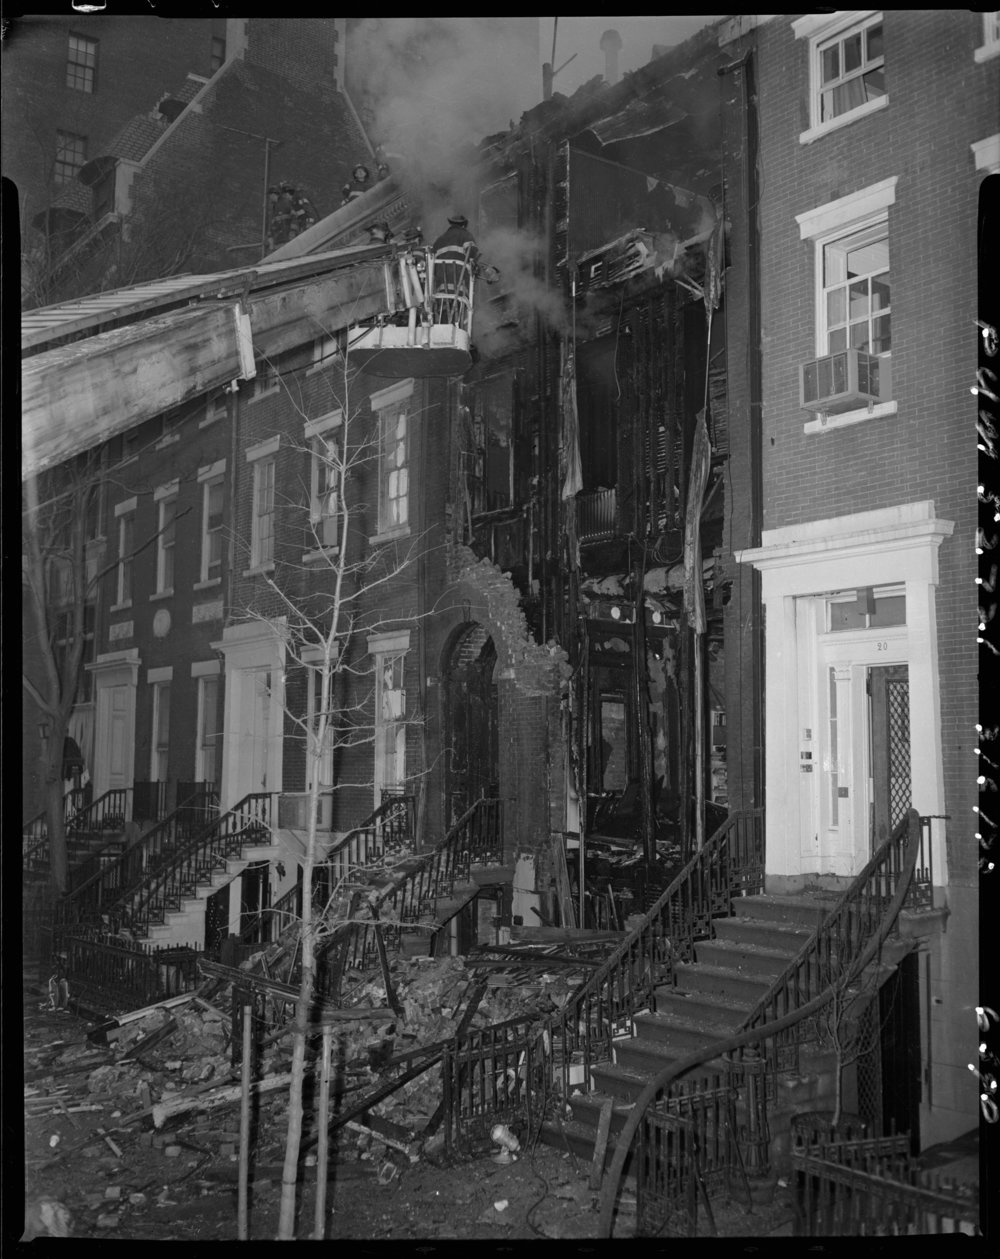 Weathermen Bombing in Greenwich Village, March 6, 1970